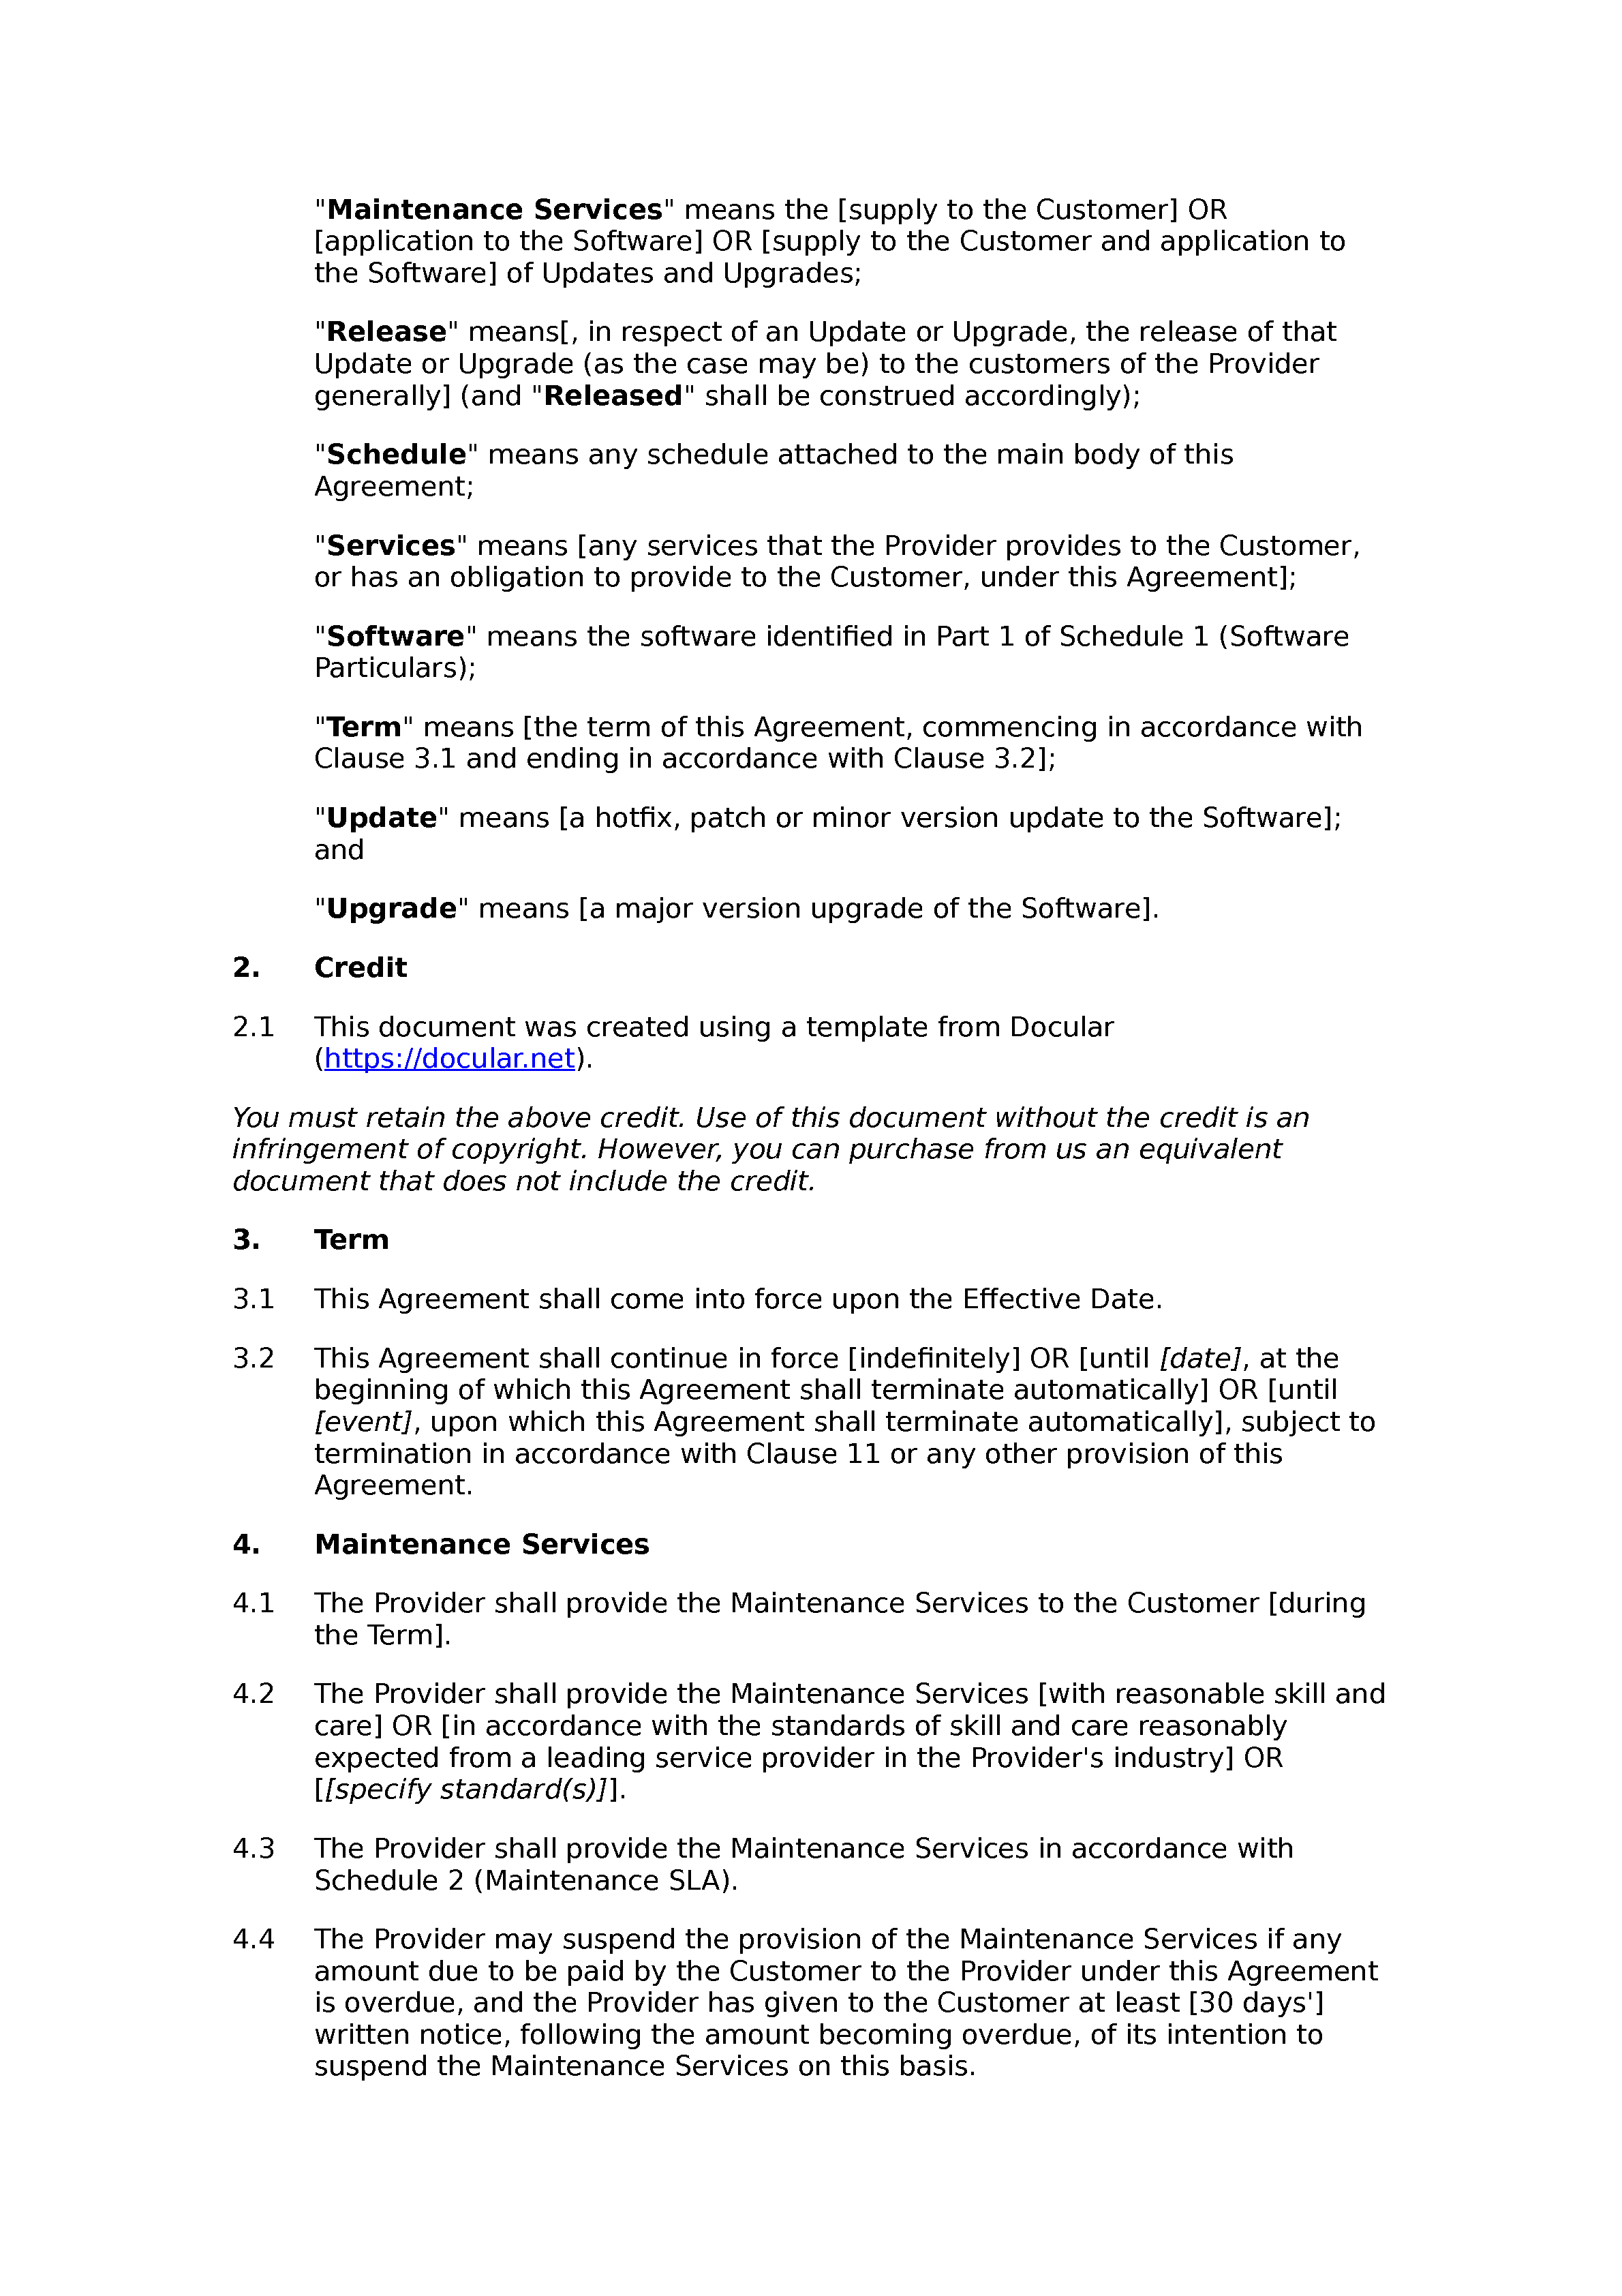 Free Software Maintenance Agreement Document Preview Free Software Maintenance  Agreement Document Preview ...